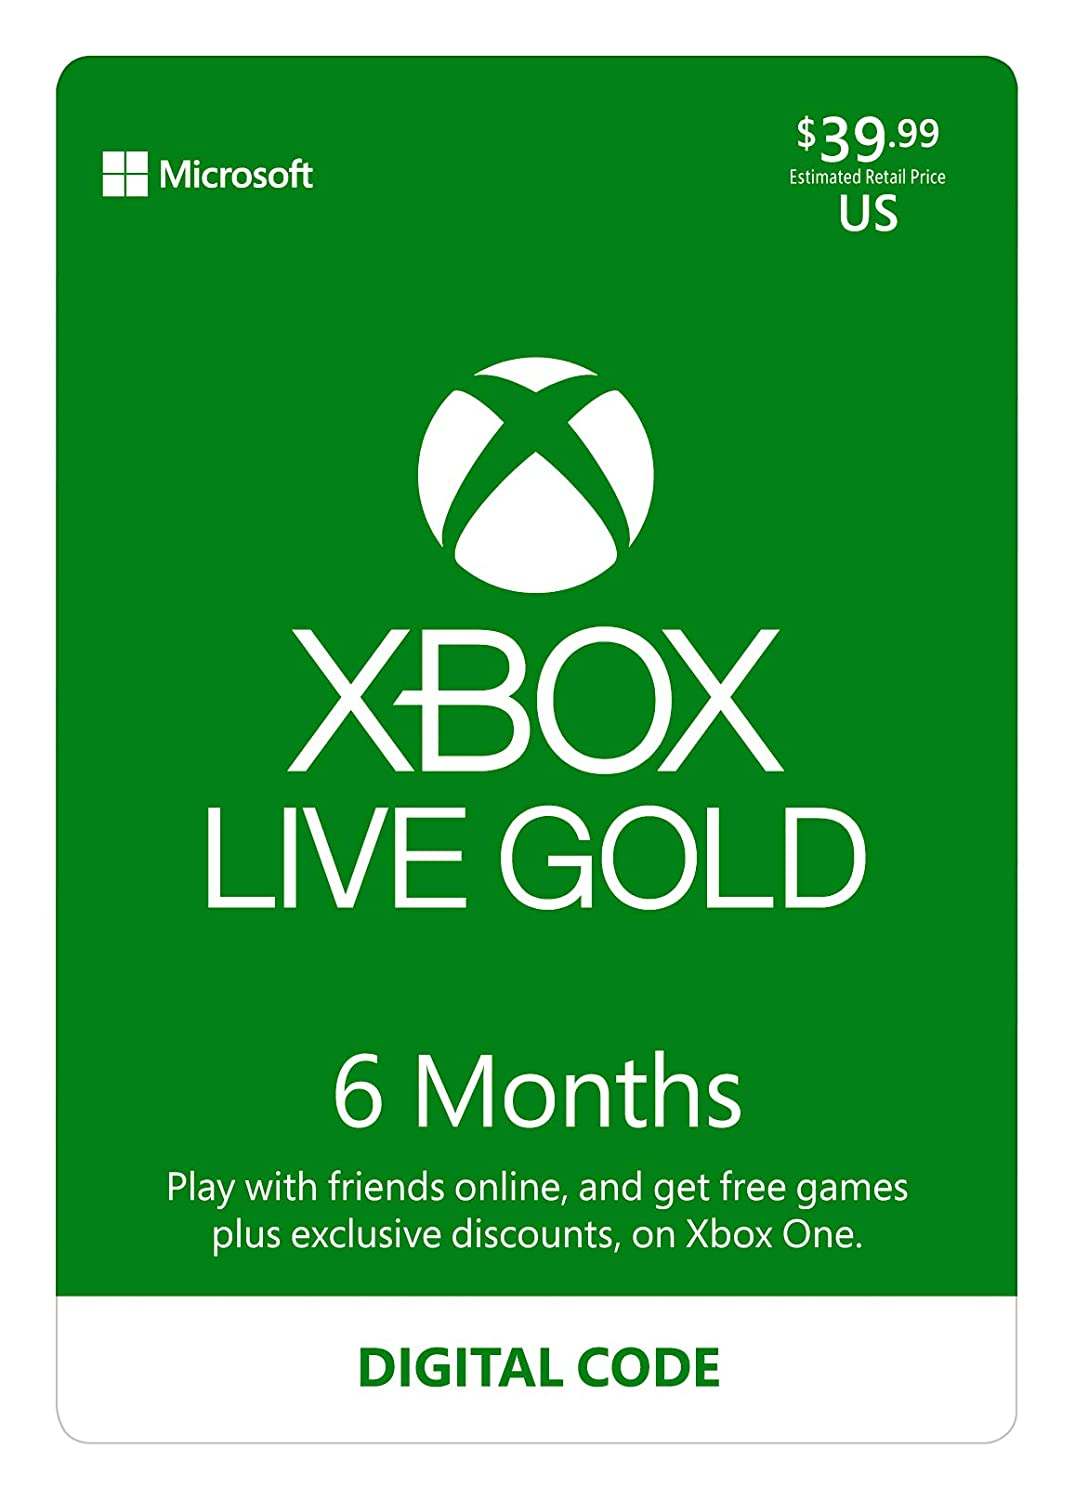 Amazon.com: Xbox Live Gold: 3 Month Membership [Digital Code]: Video Games